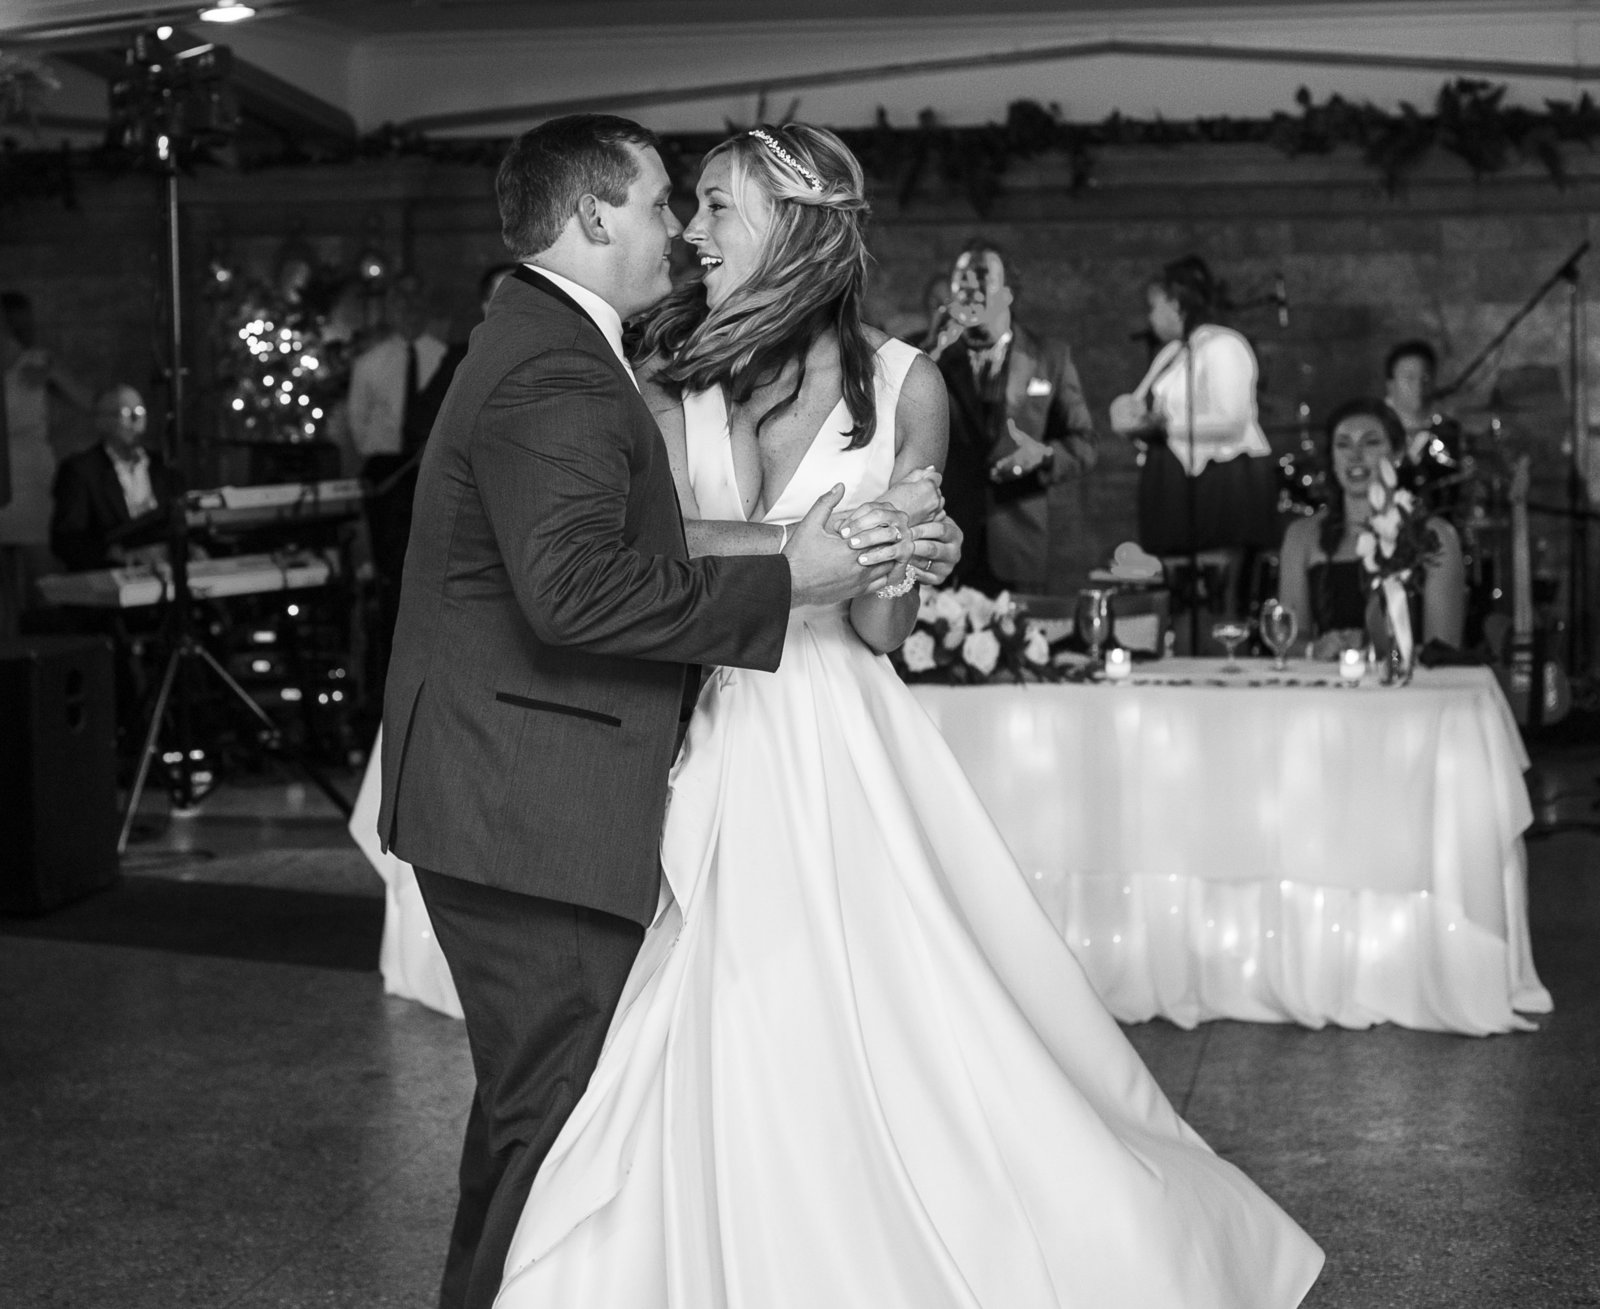 Bride and groom mid twirl of their first dance at Masonic Temple wedding reception